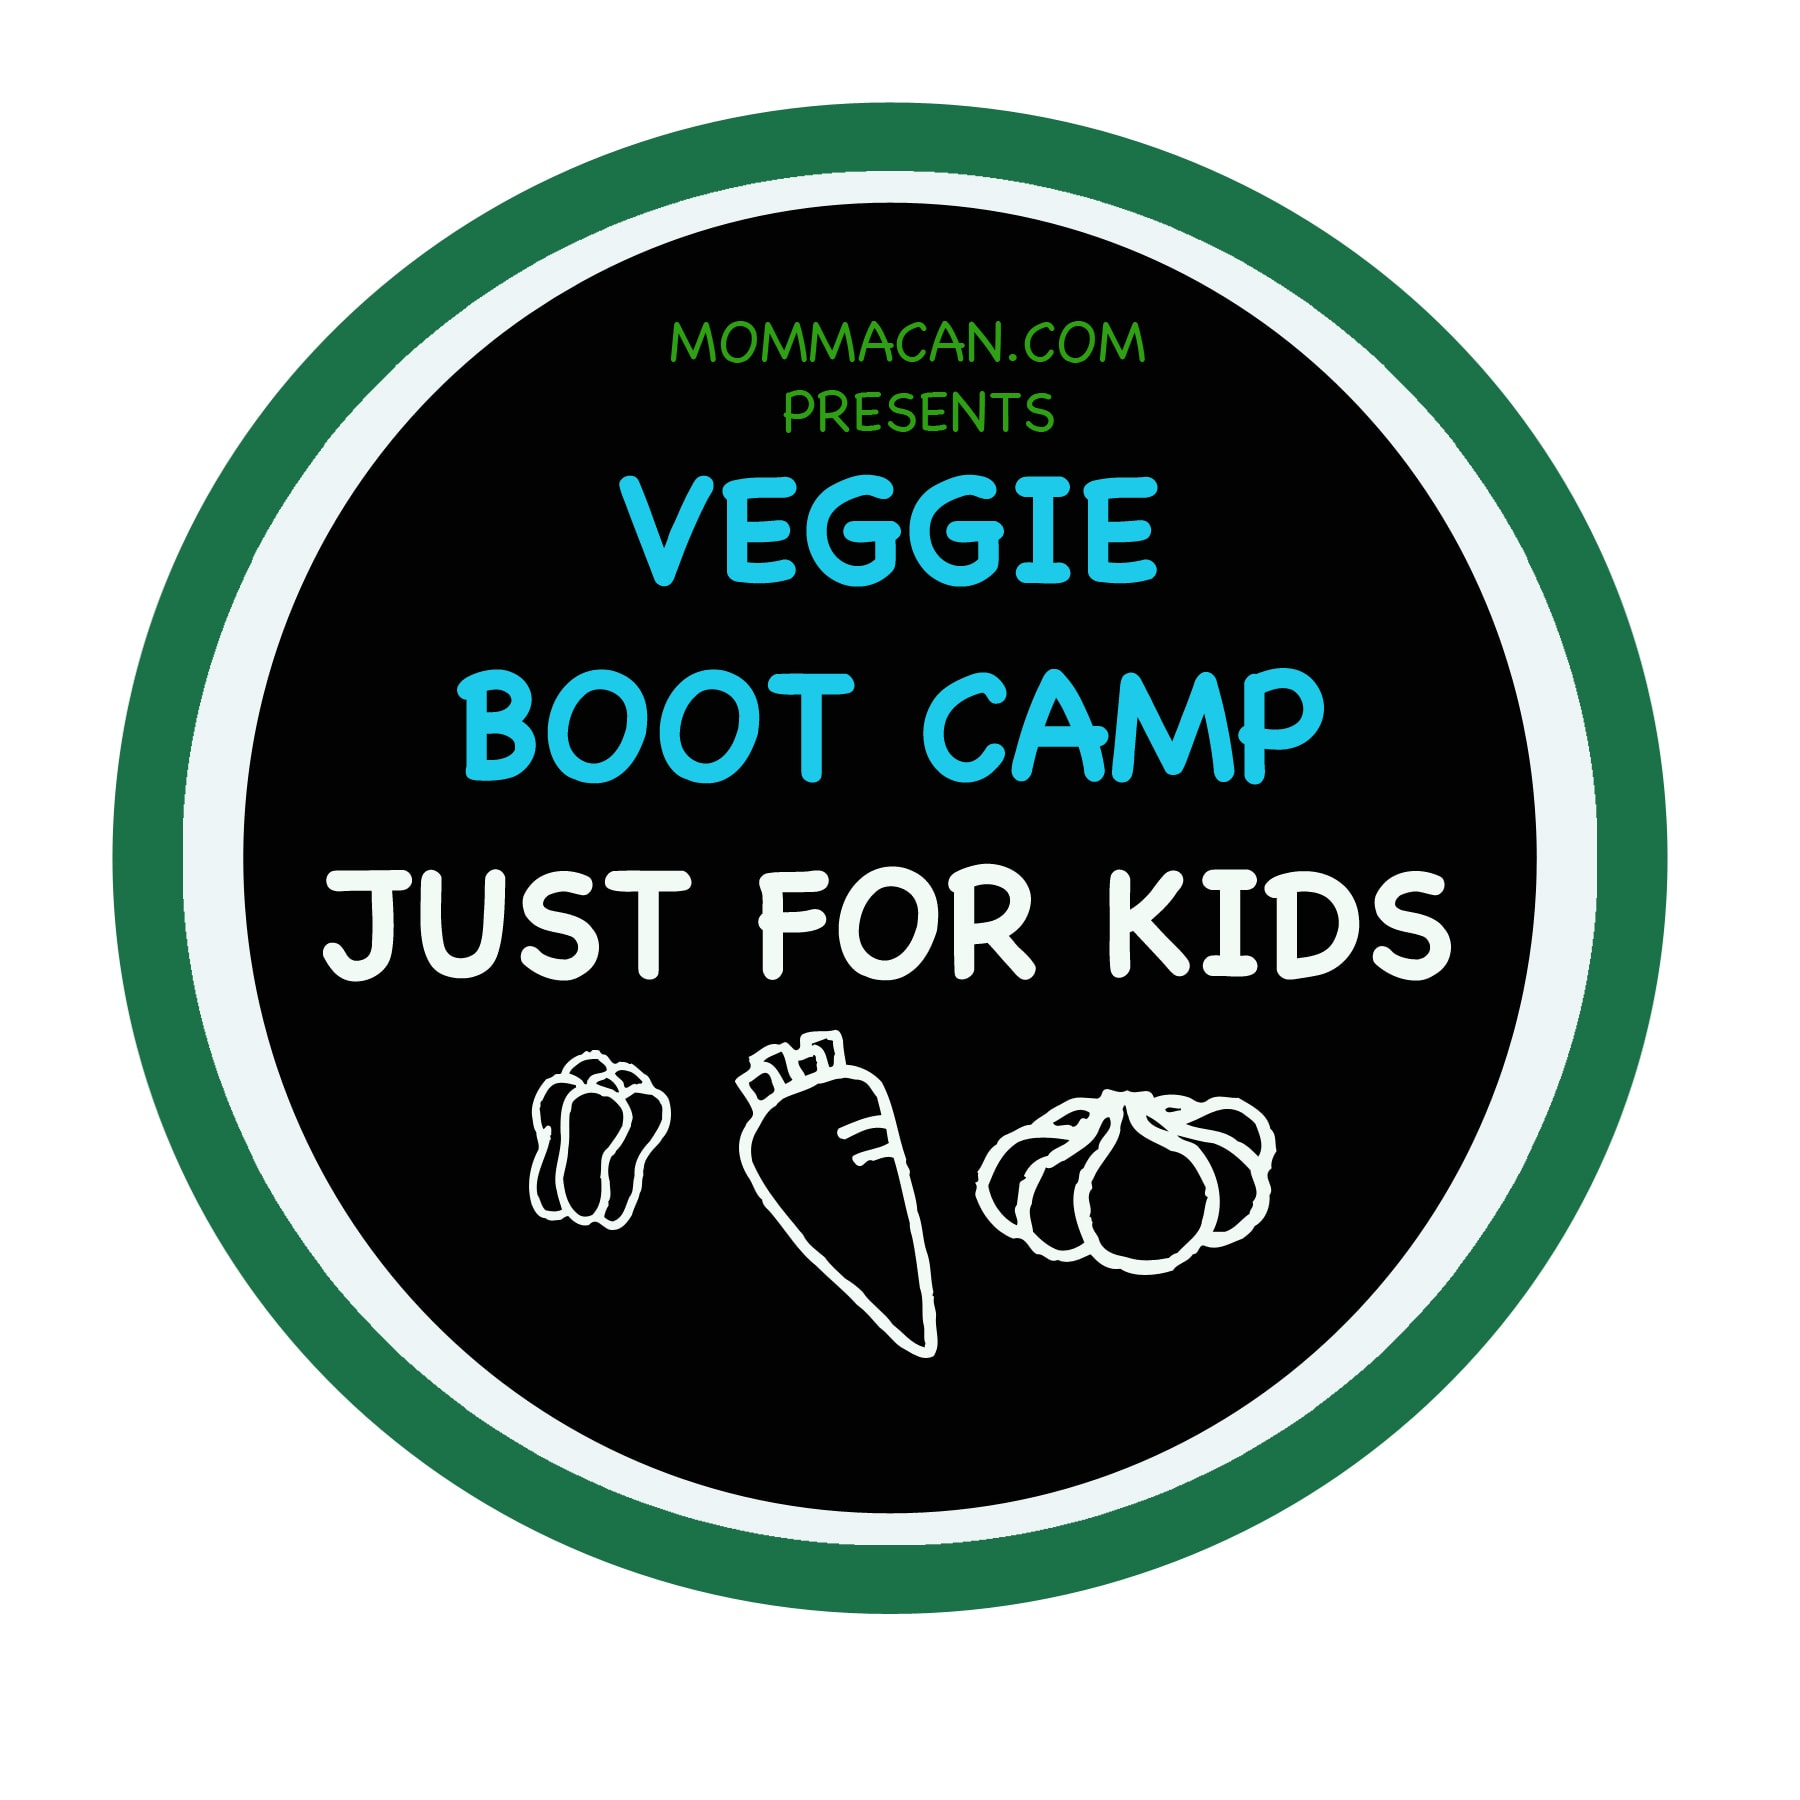 Veggie Boot Camp Just for Kids – Kick Off- Camp Rules